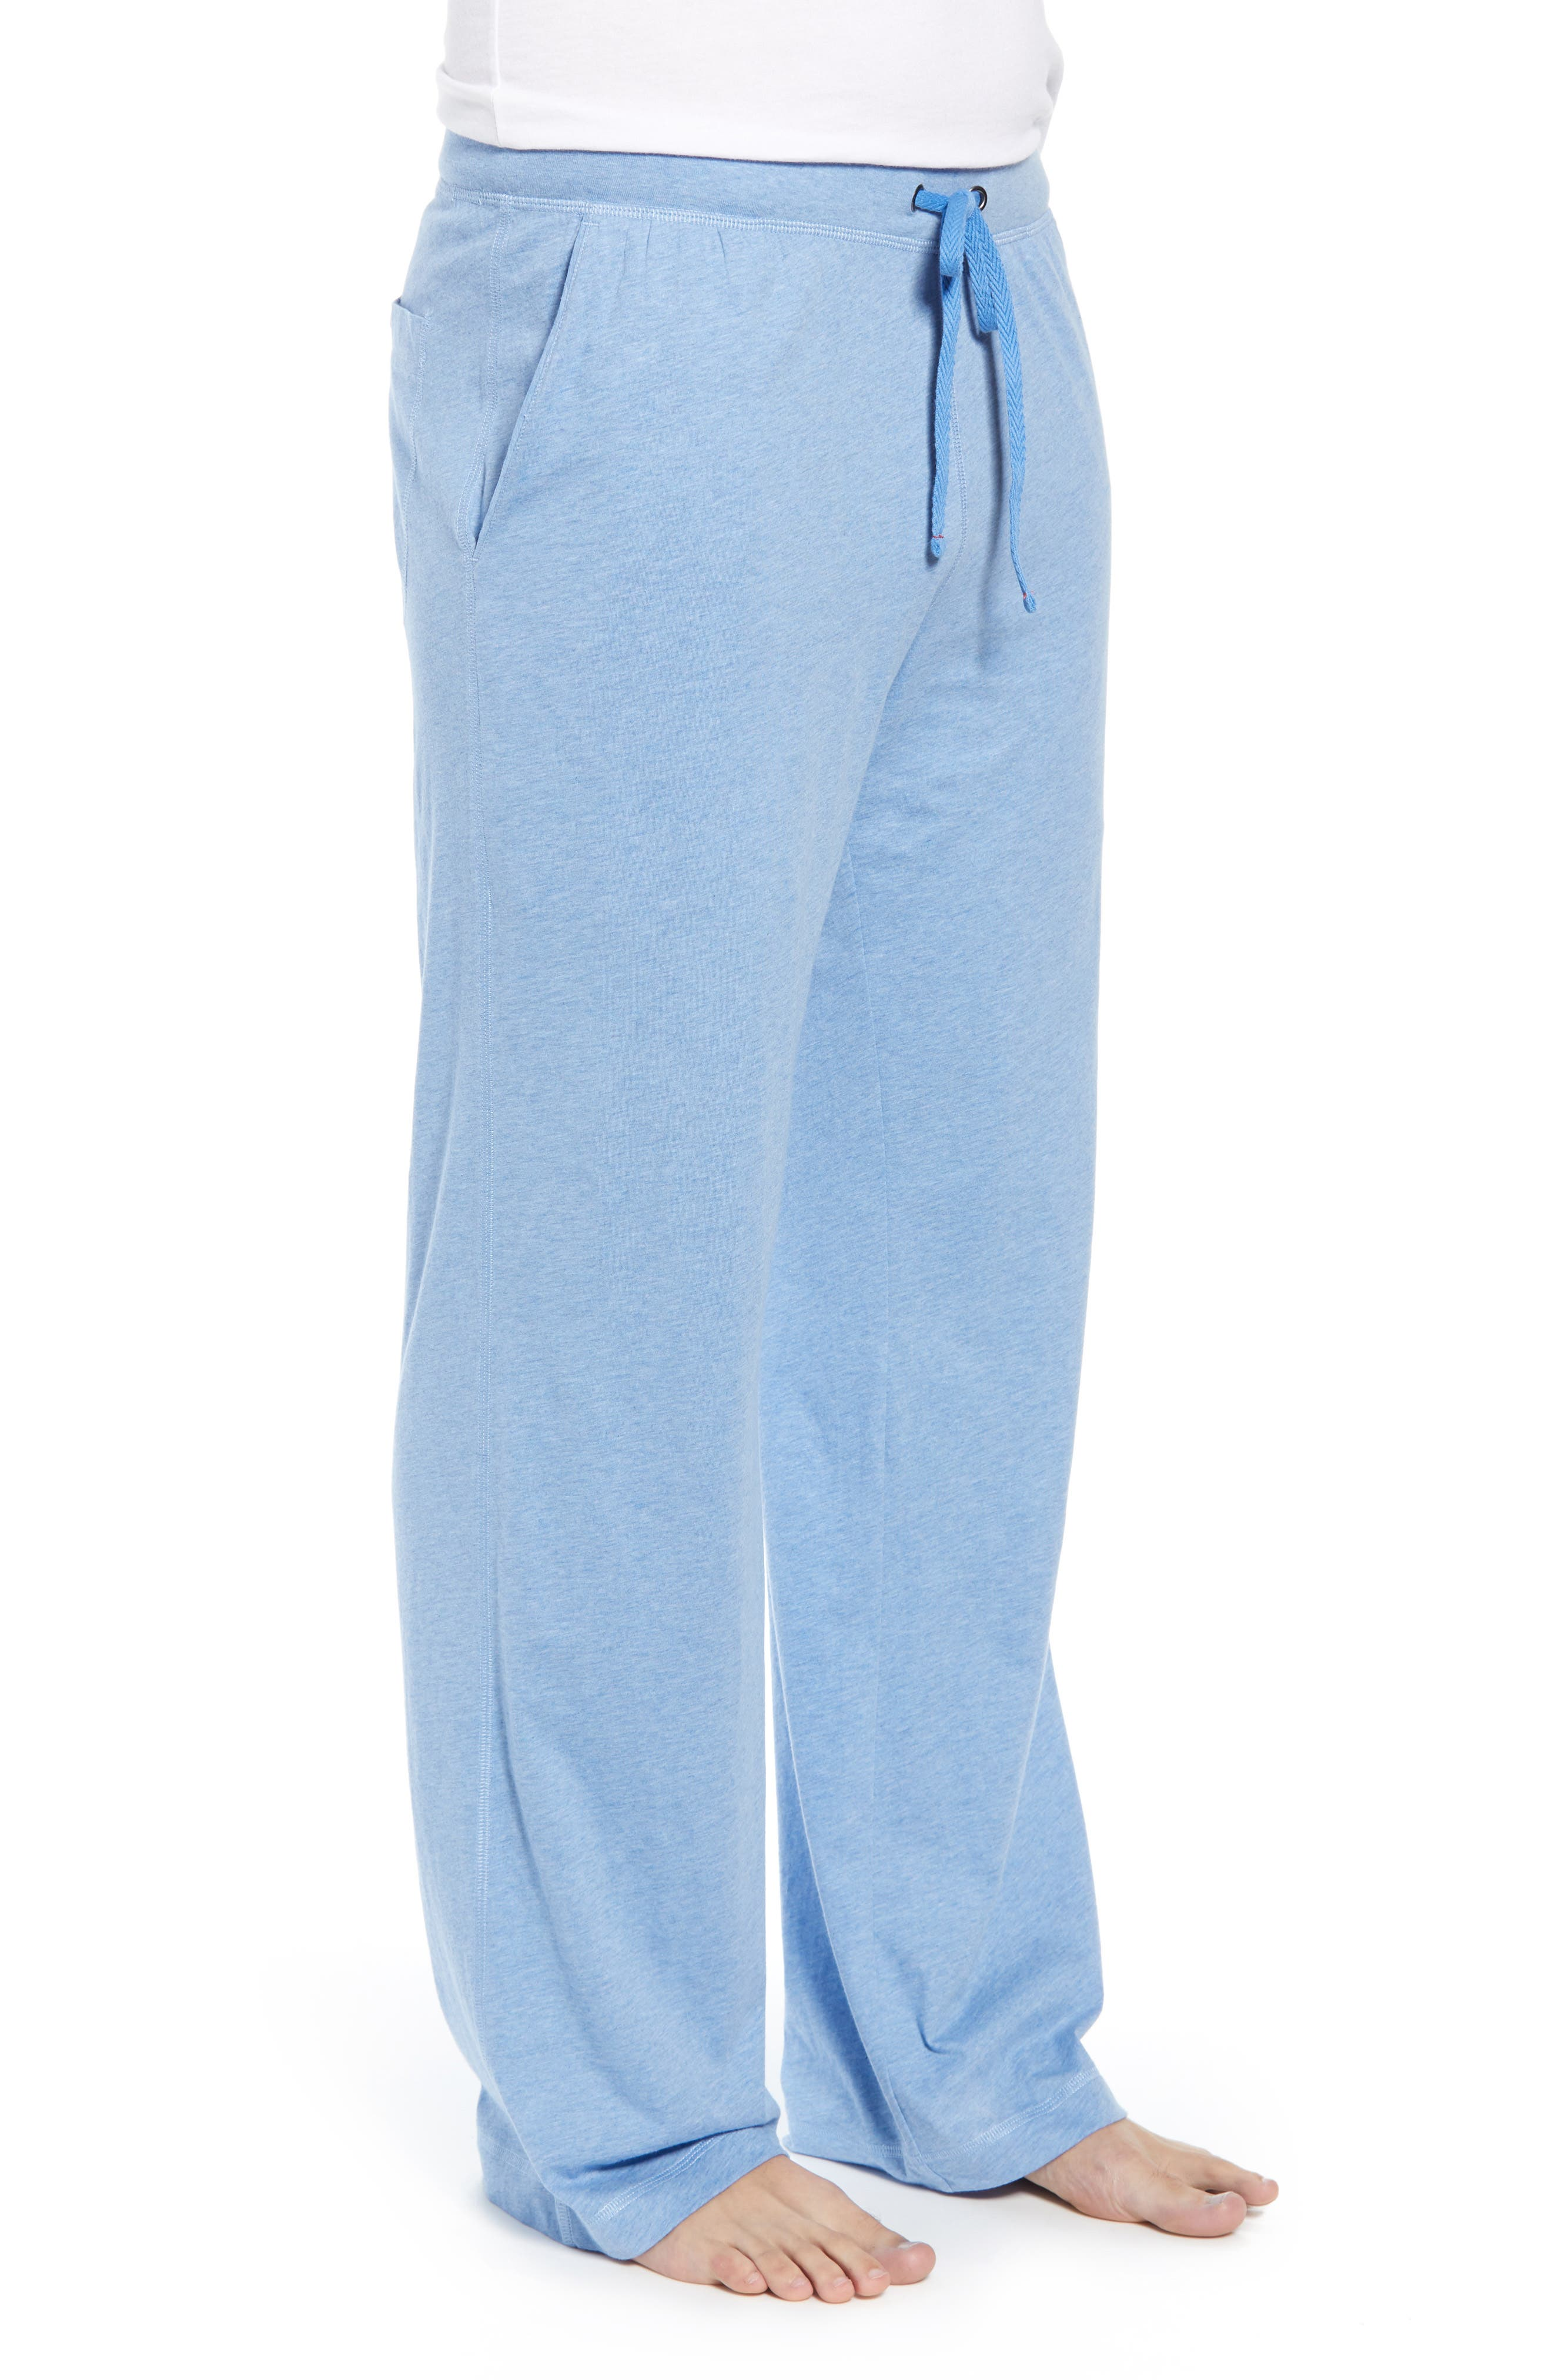 DANIEL BUCHLER, Peruvian Pima Lightweight Cotton Lounge Pants, Alternate thumbnail 3, color, BLUE HEATHER